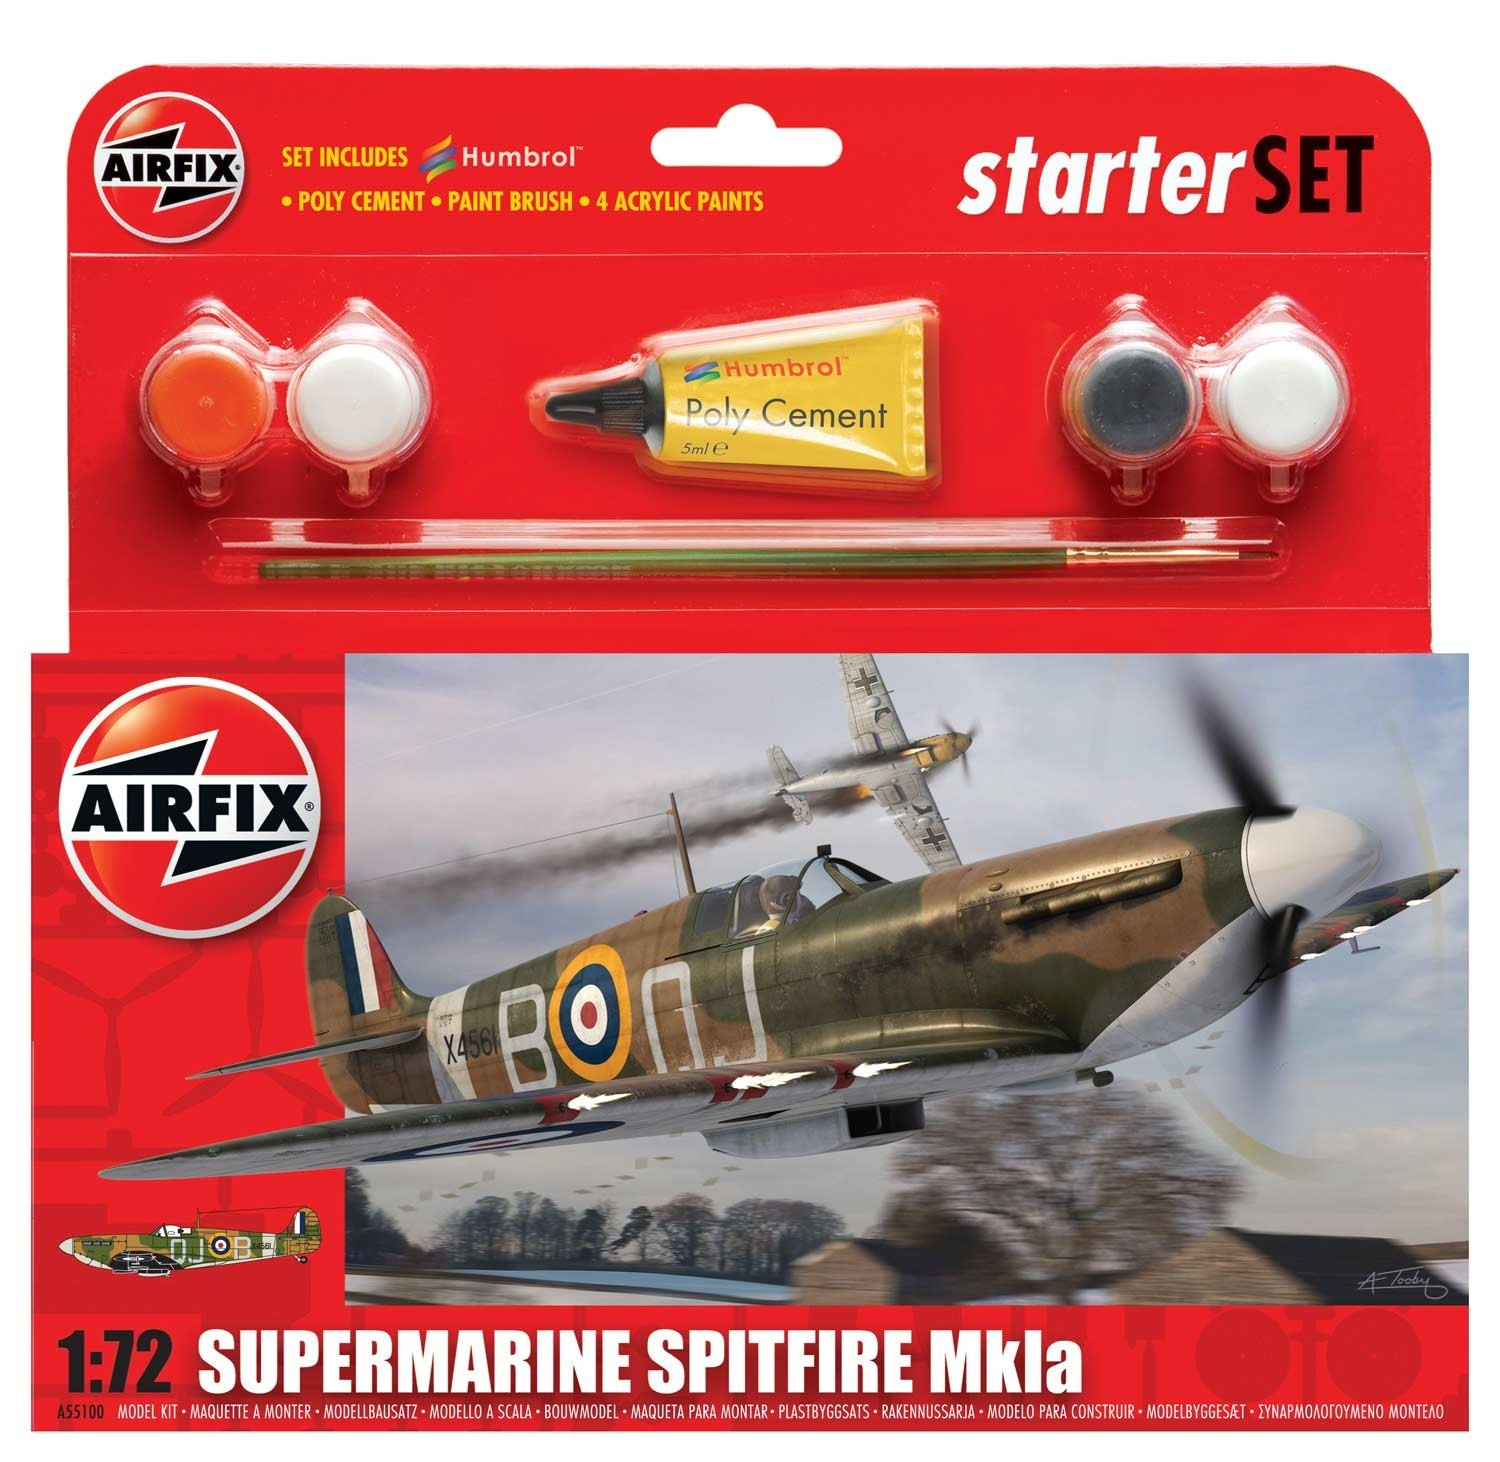 Airfix Supermarine Spitfire Mkla Starter Set 1/72 Model Kit image